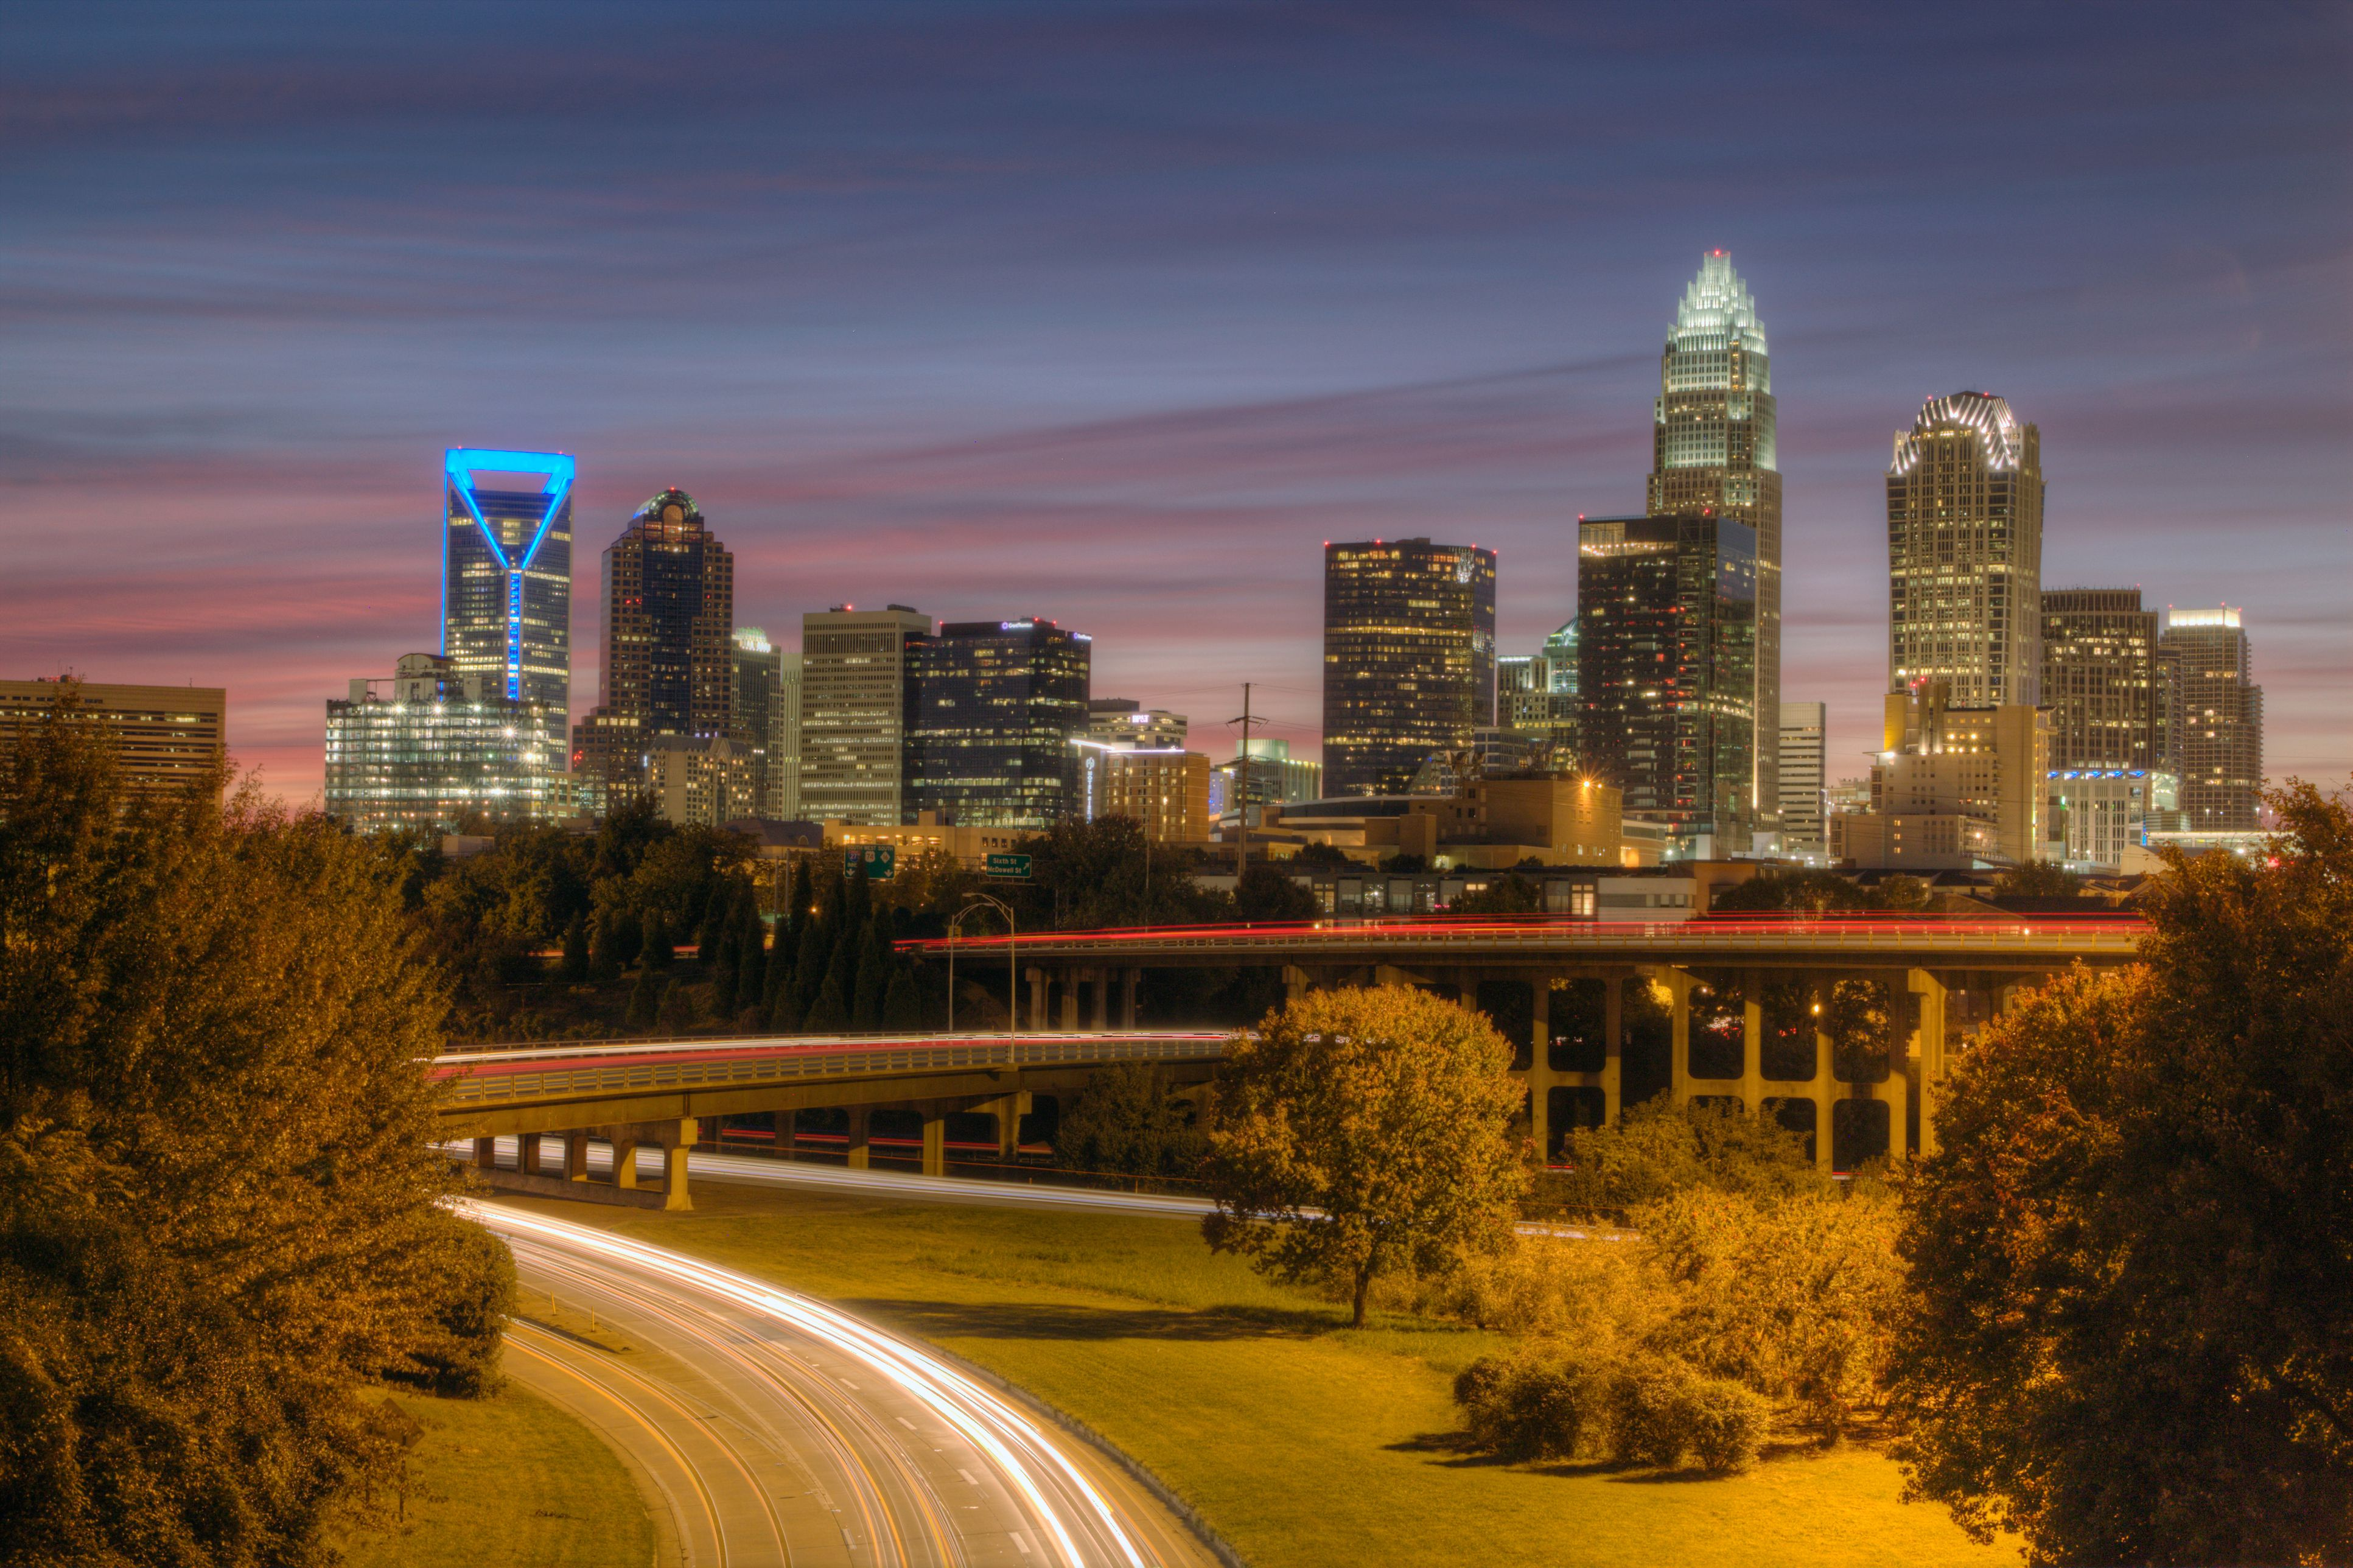 Free Museums and Museum Days in Charlotte